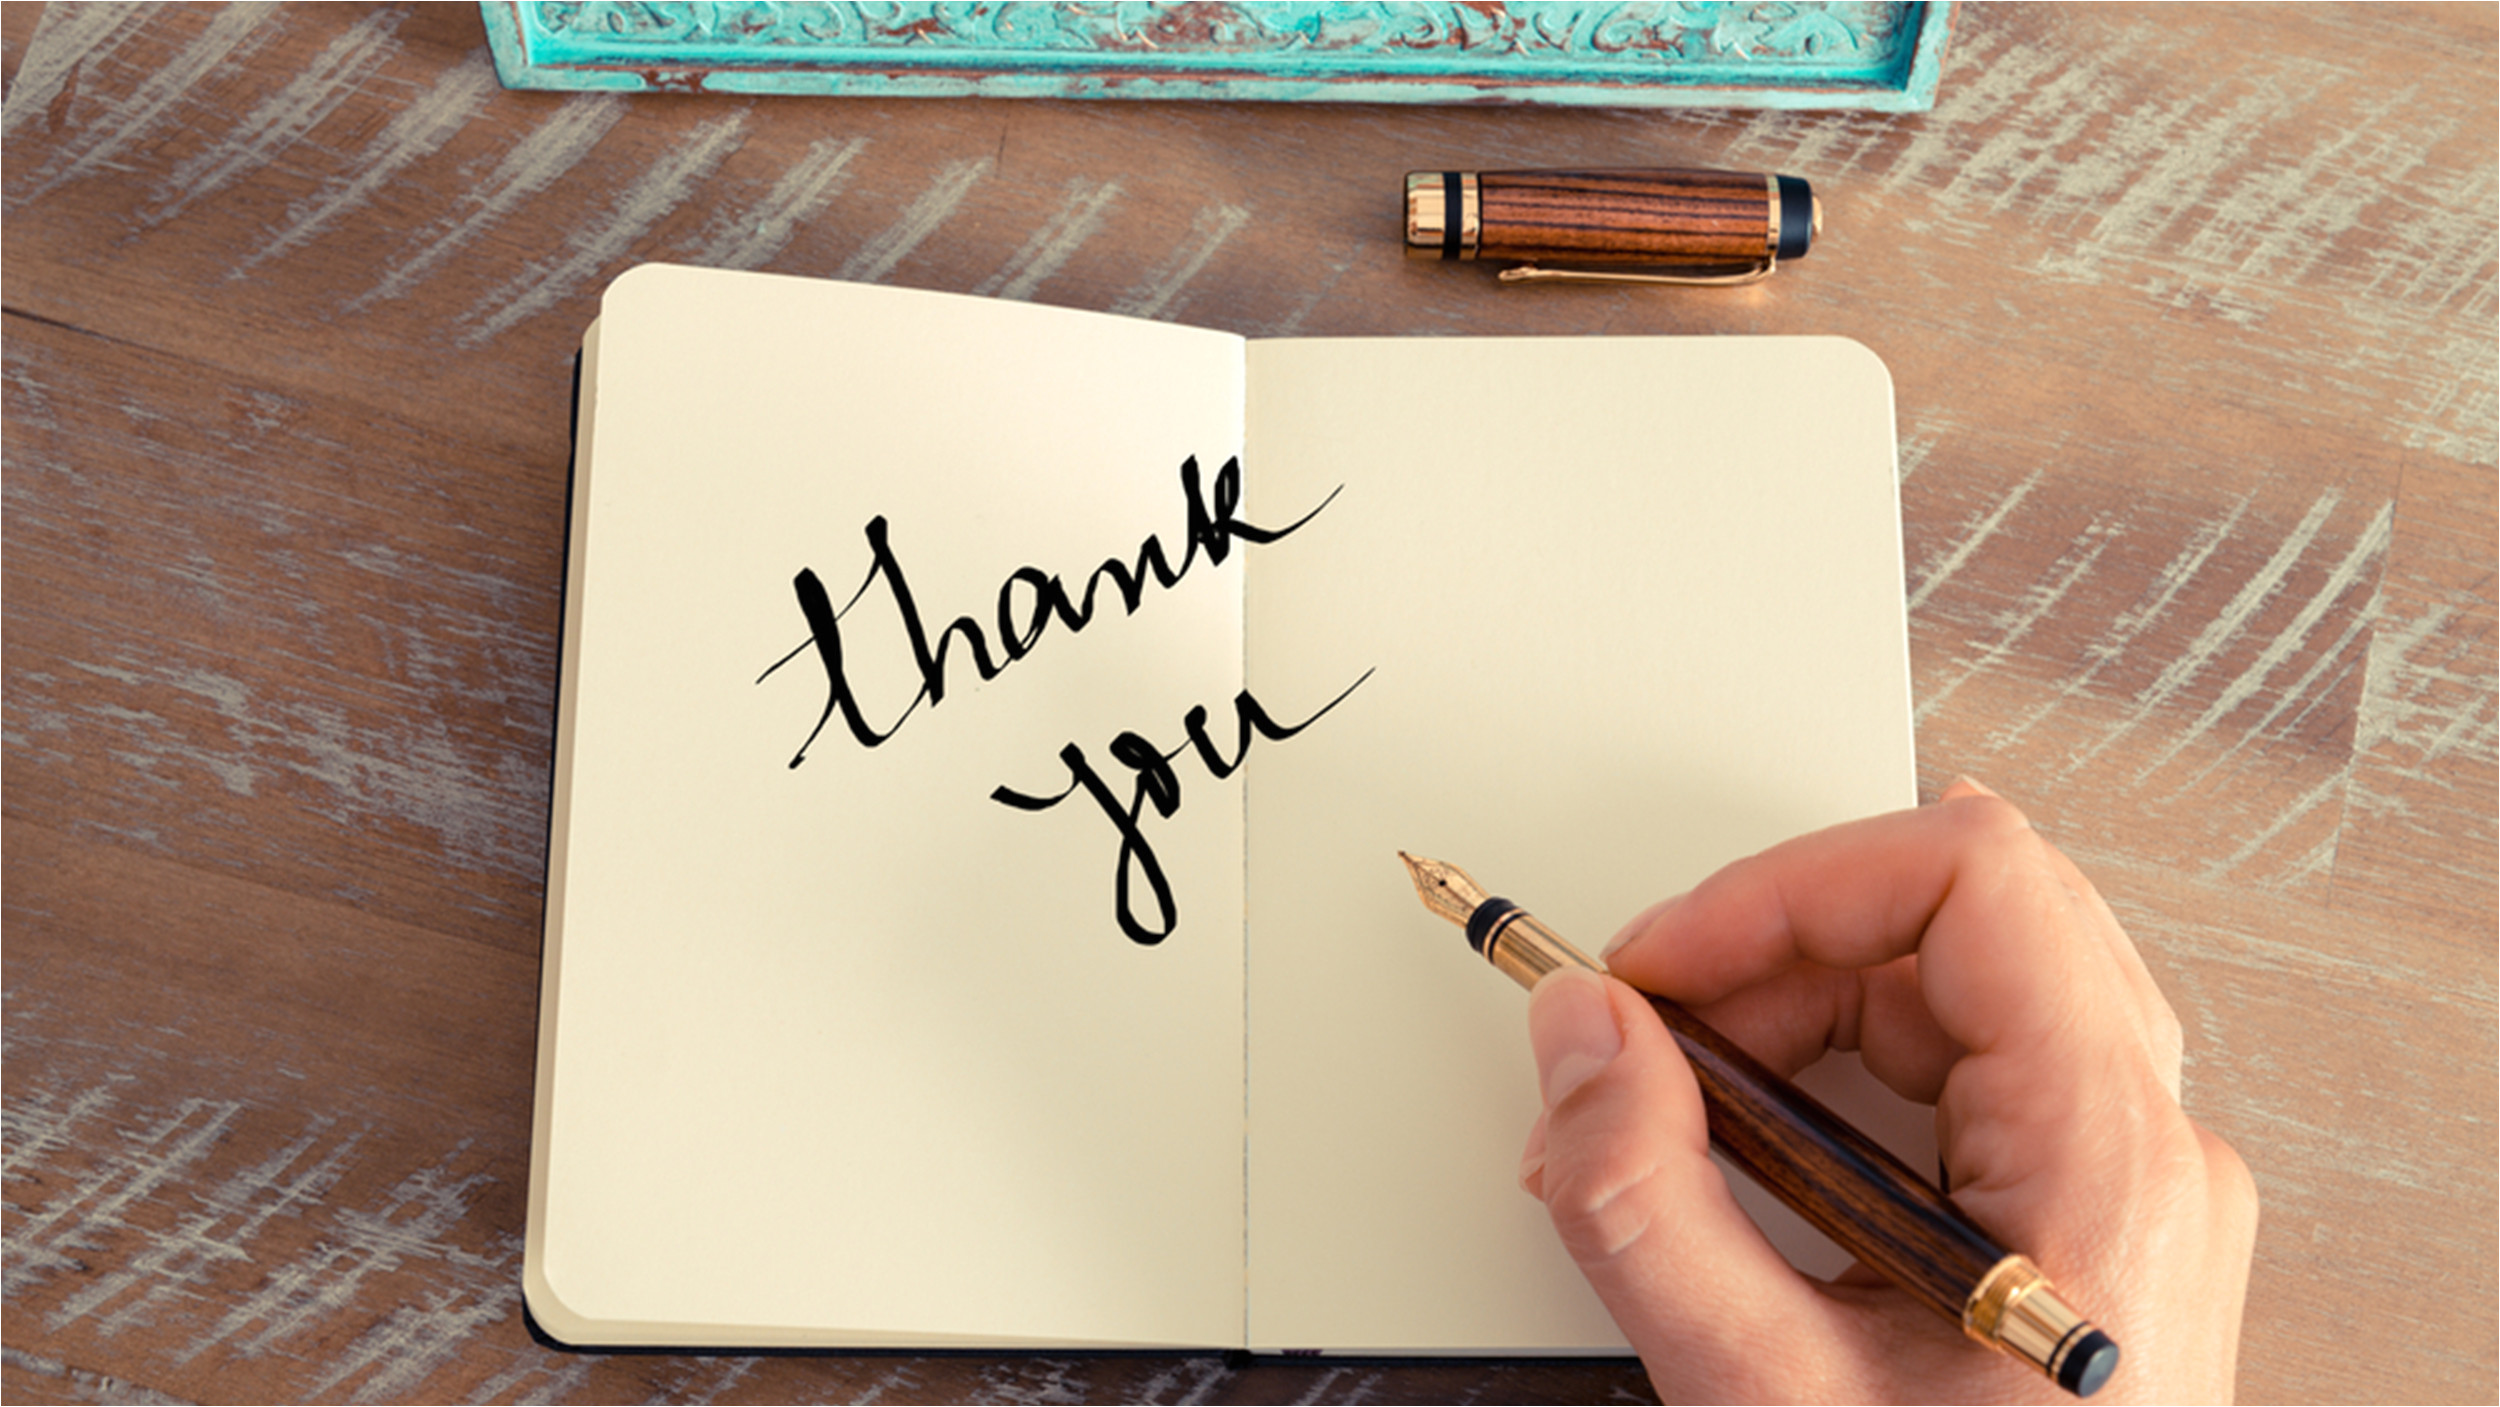 thank you note today 160304 0507464a2200e697ca158d86c689a615 jpg